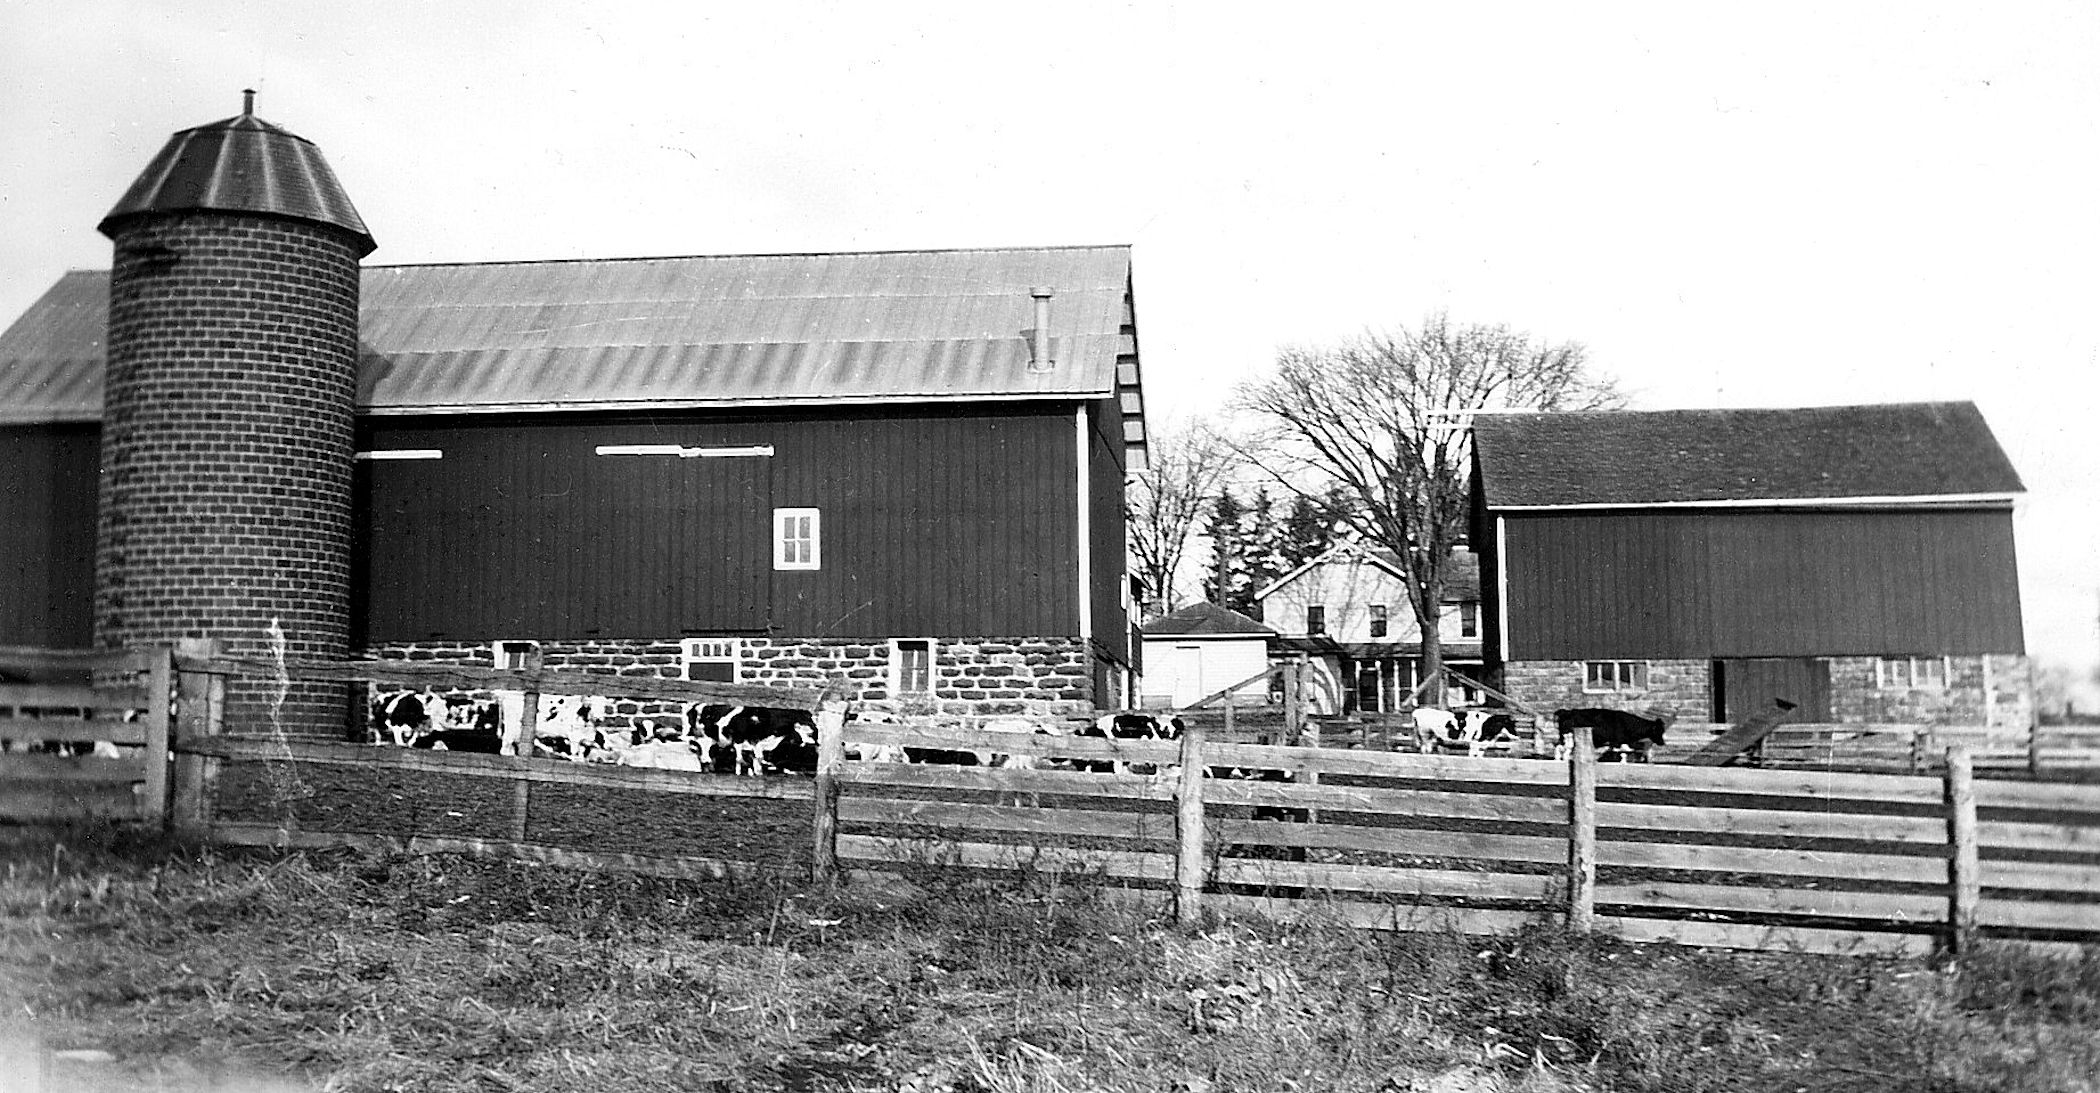 These barns are located near Loganville, and represent a traditional red paint job which was popular in the late 1800s through the 1900s.